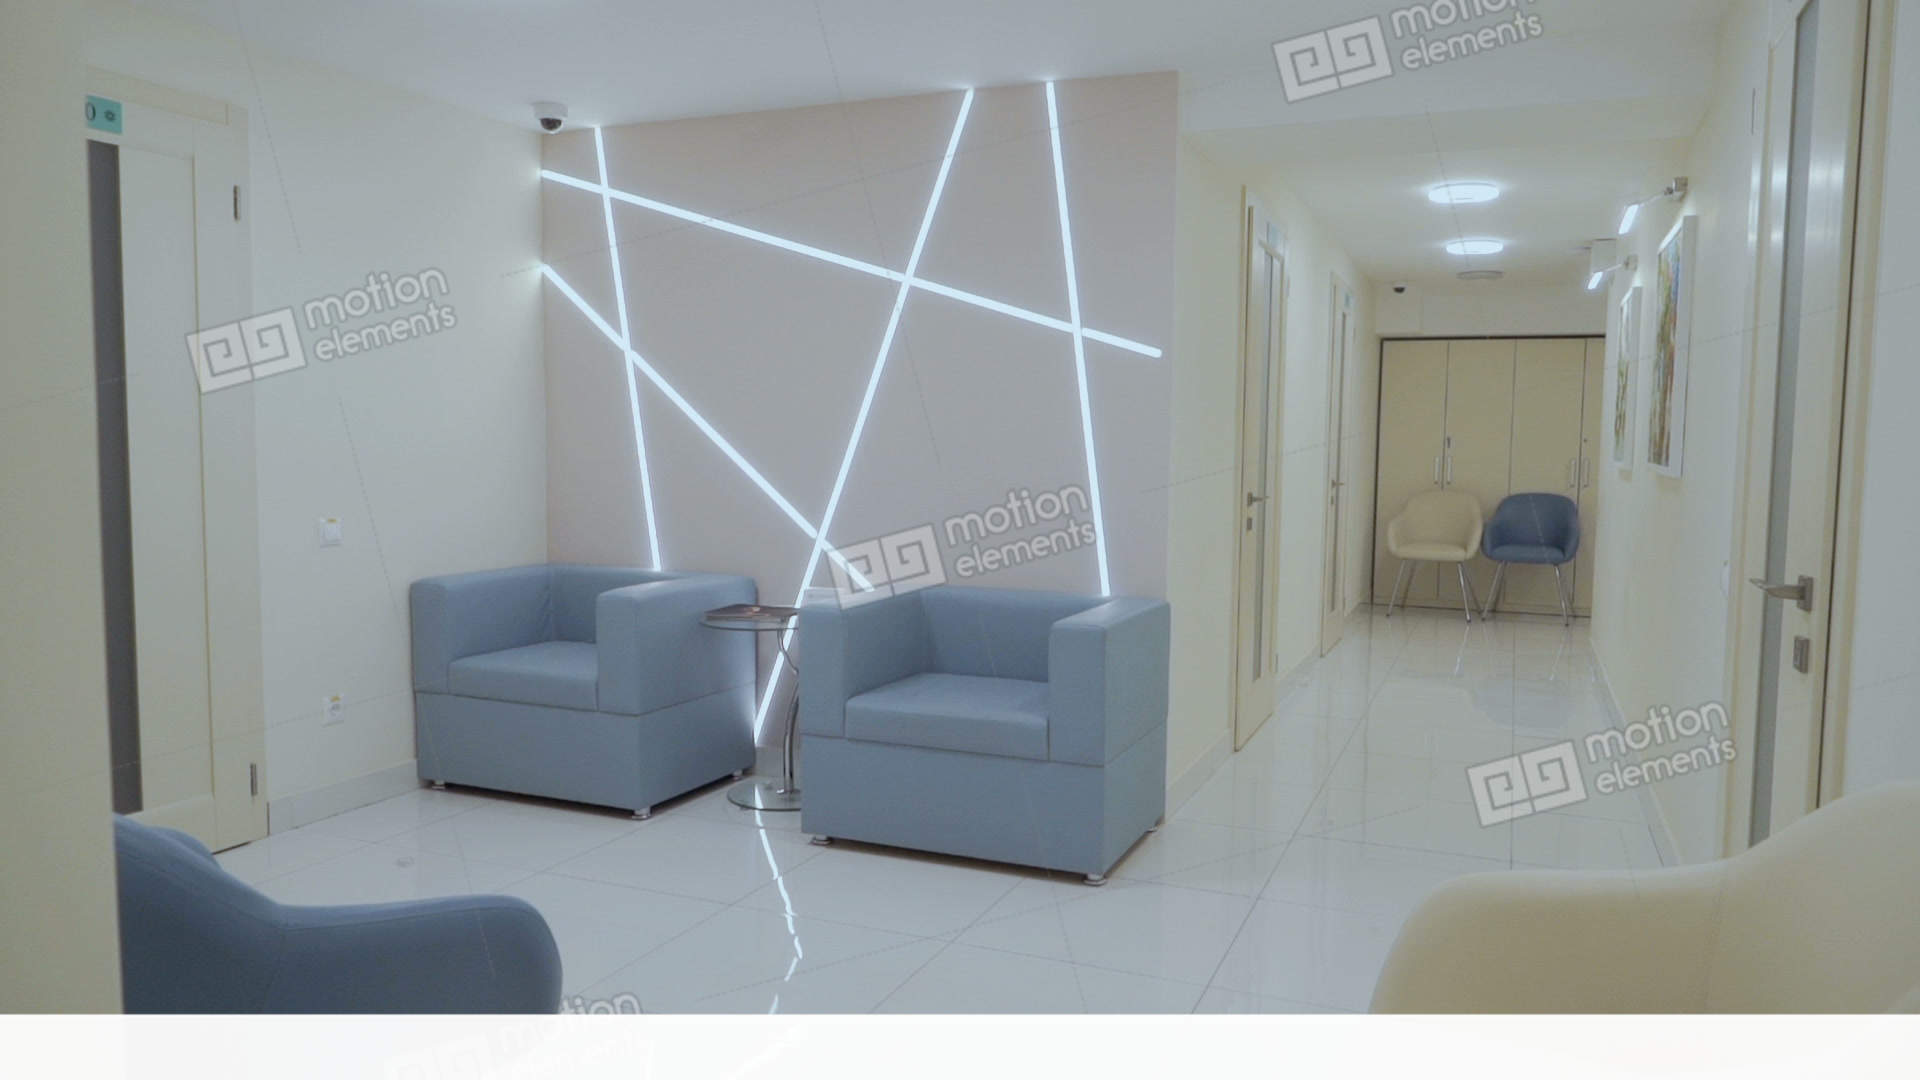 New and stylish interior design in modern clinic stock video footage